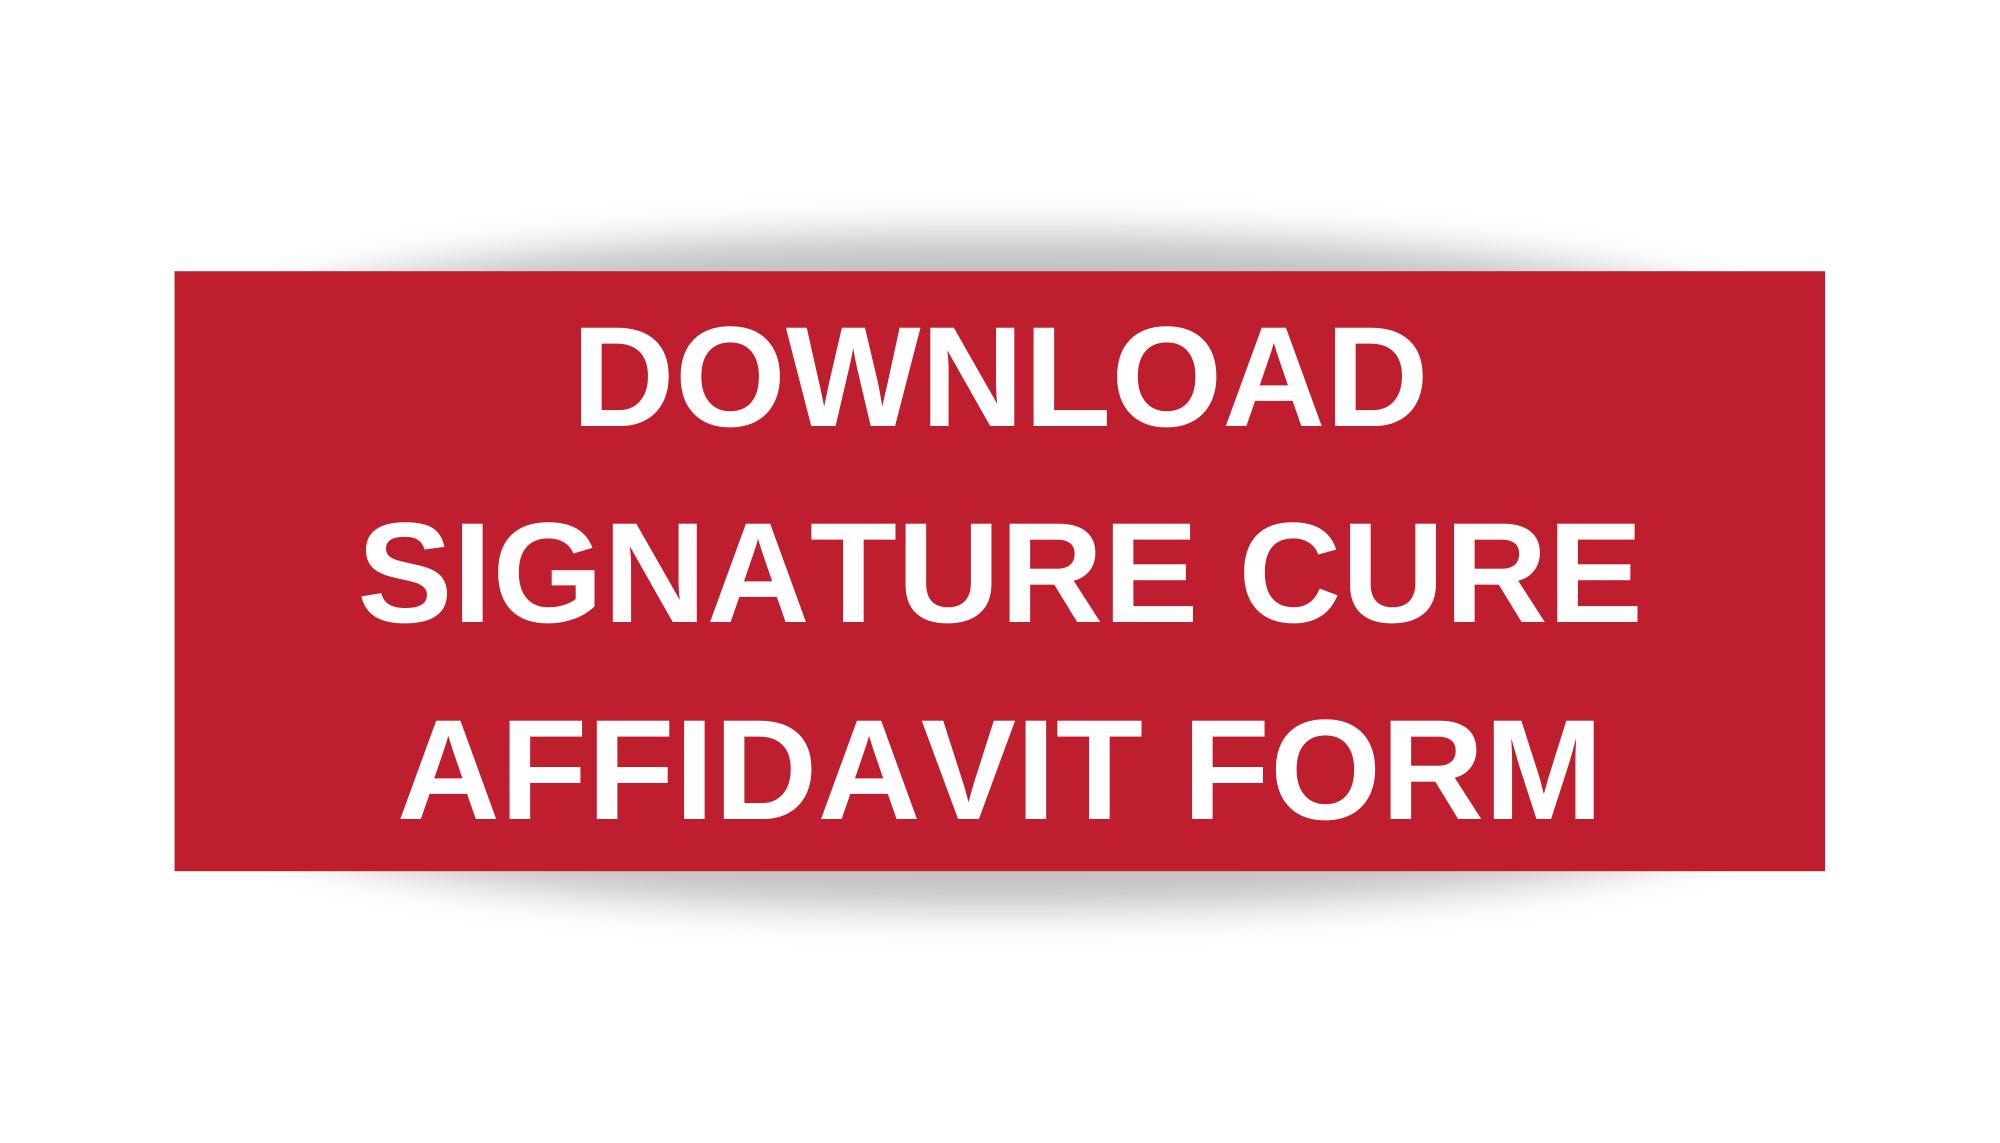 Download a Signature Cure Affidavit Form